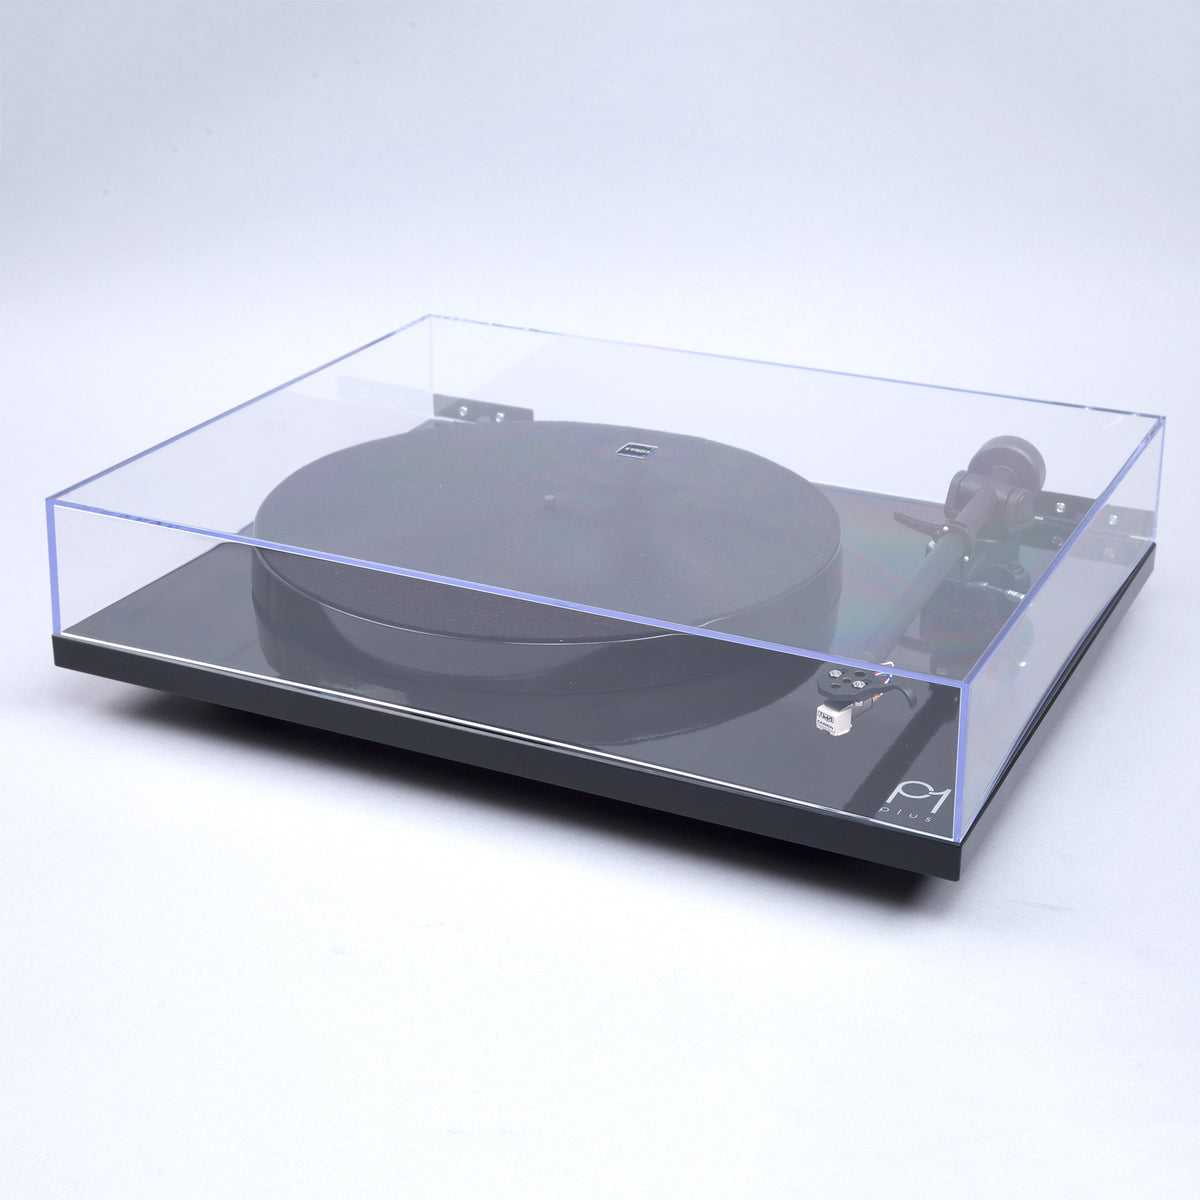 Rega: Planar 1 Plus Turntable w/Built-In Phono Preamp - Black